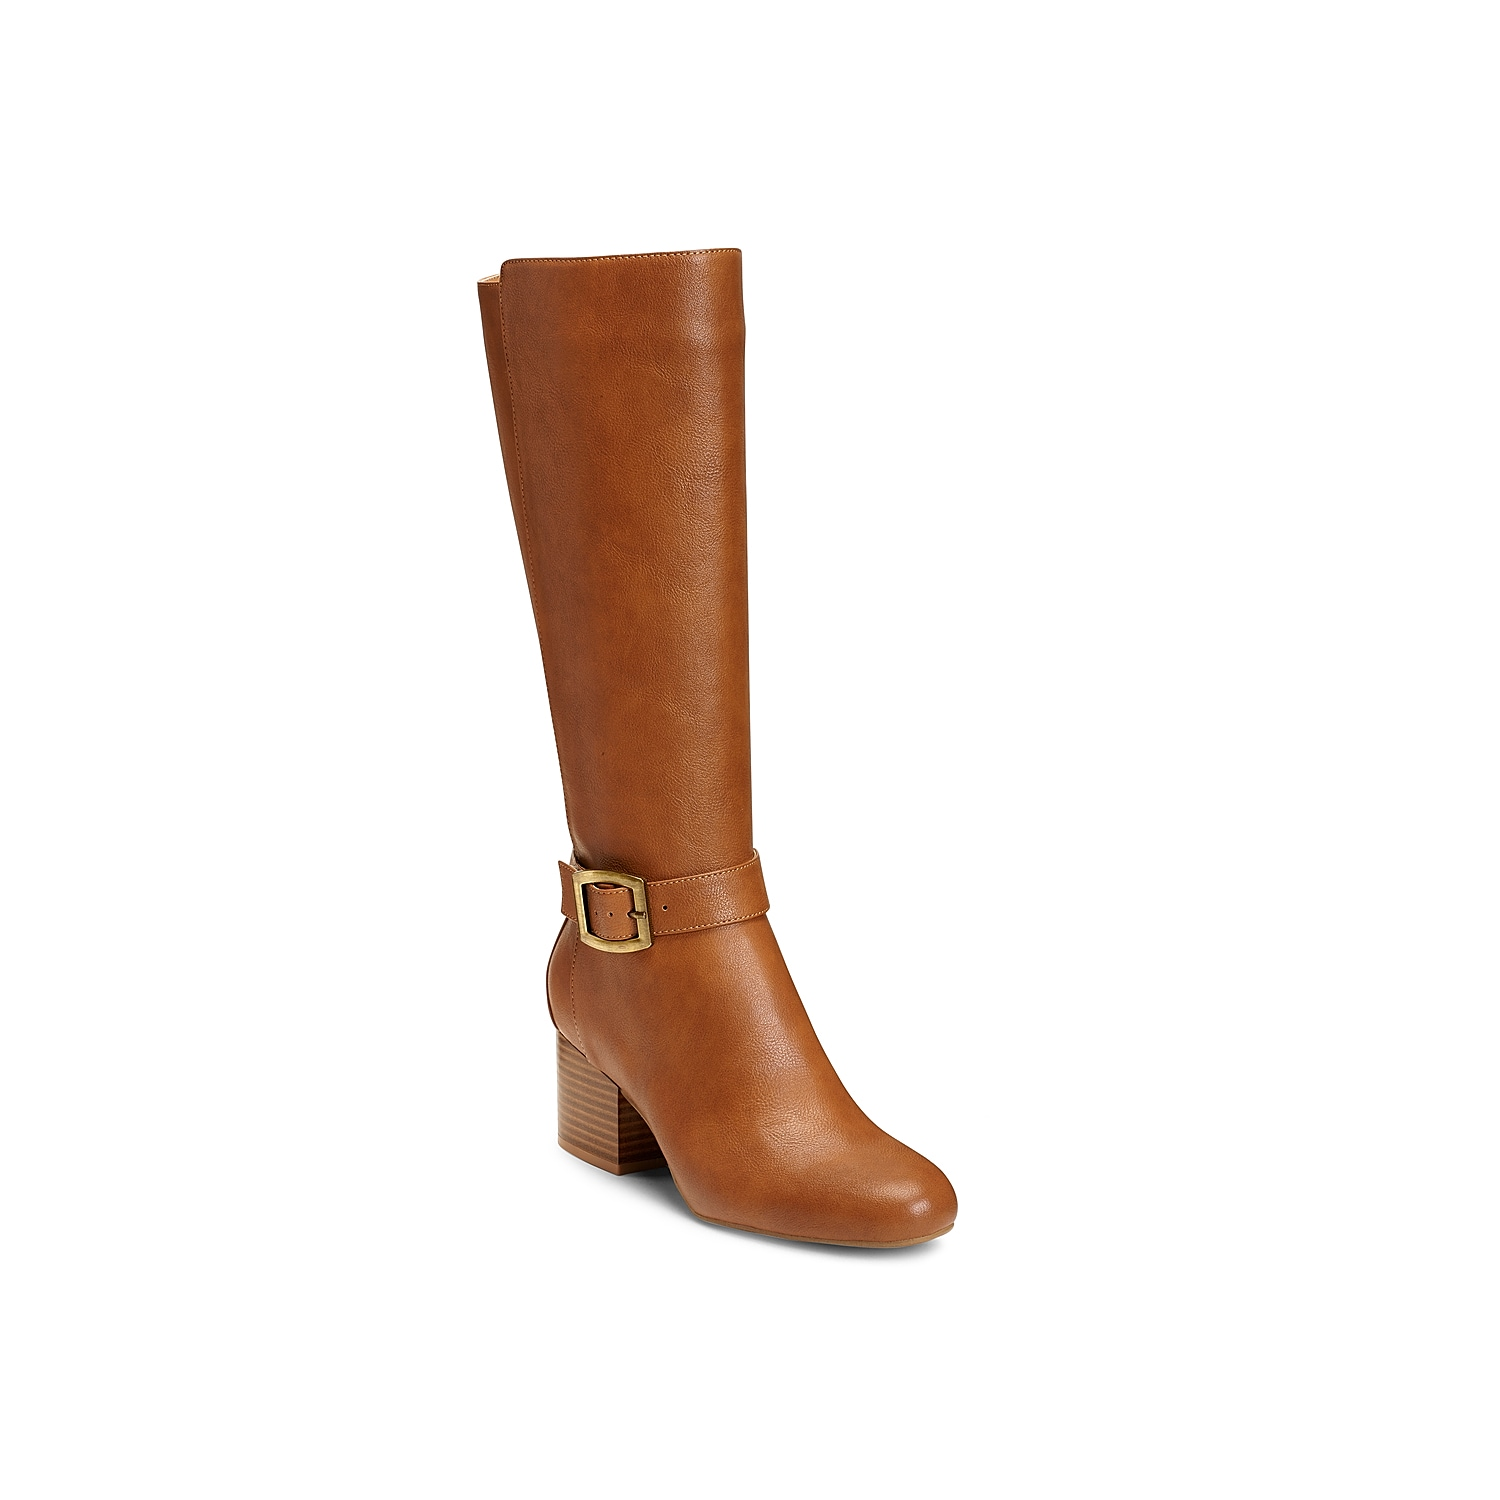 Enjoy elevated style when you pull on the Patience boot from Aerosoles. These tall leatherette boots features a smooth-as-silk upper and an elegant buckle that\\\'s neatly placed at the ankle.